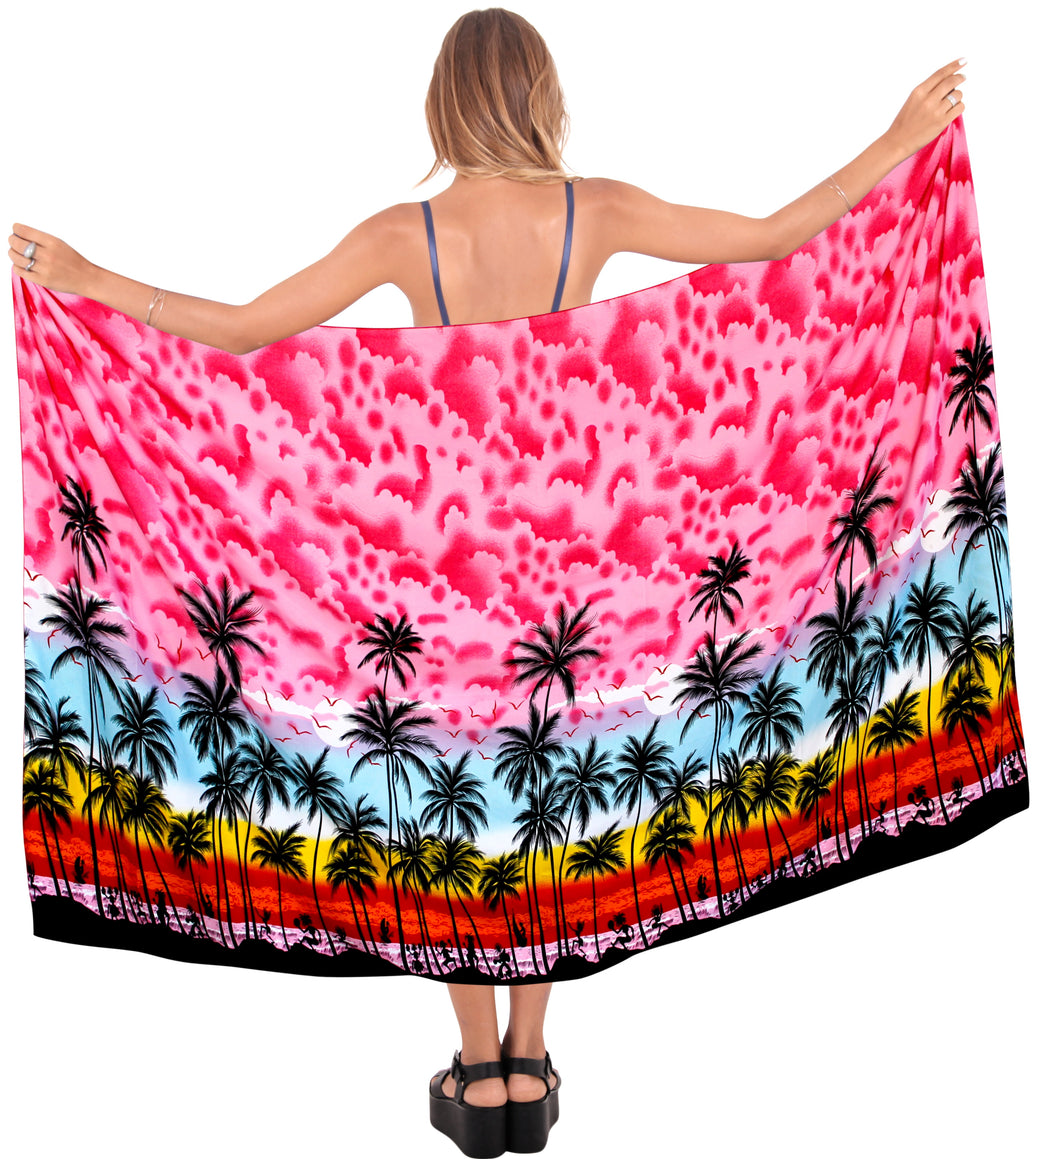 la-leela-swimwear-soft-light-women-bathing-suit-swimsuit-sarong-Palm-Tree-printed-Pink